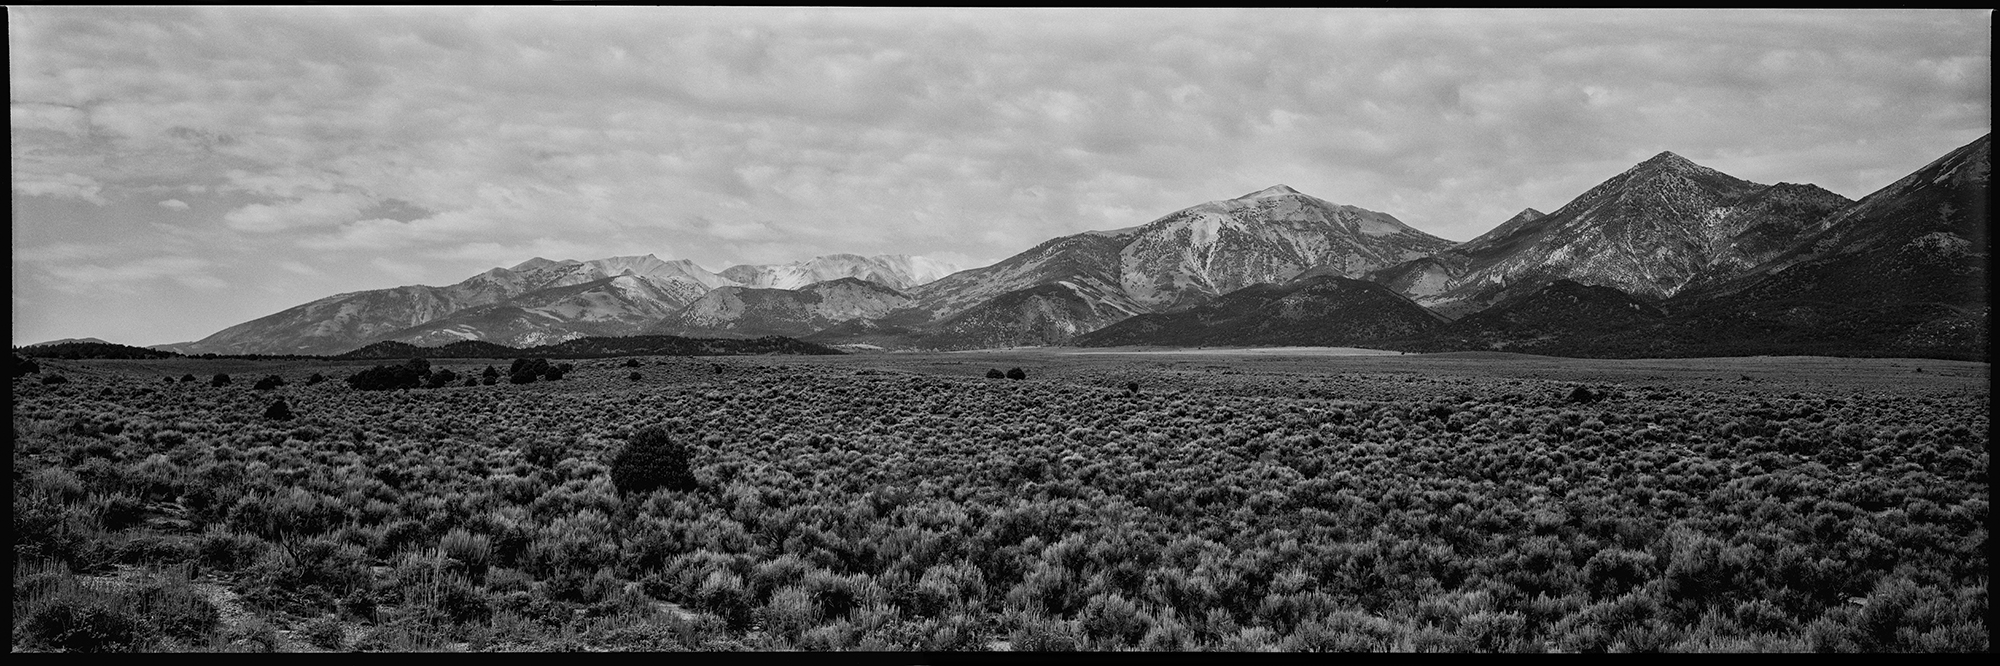 Sweetwater Mountains